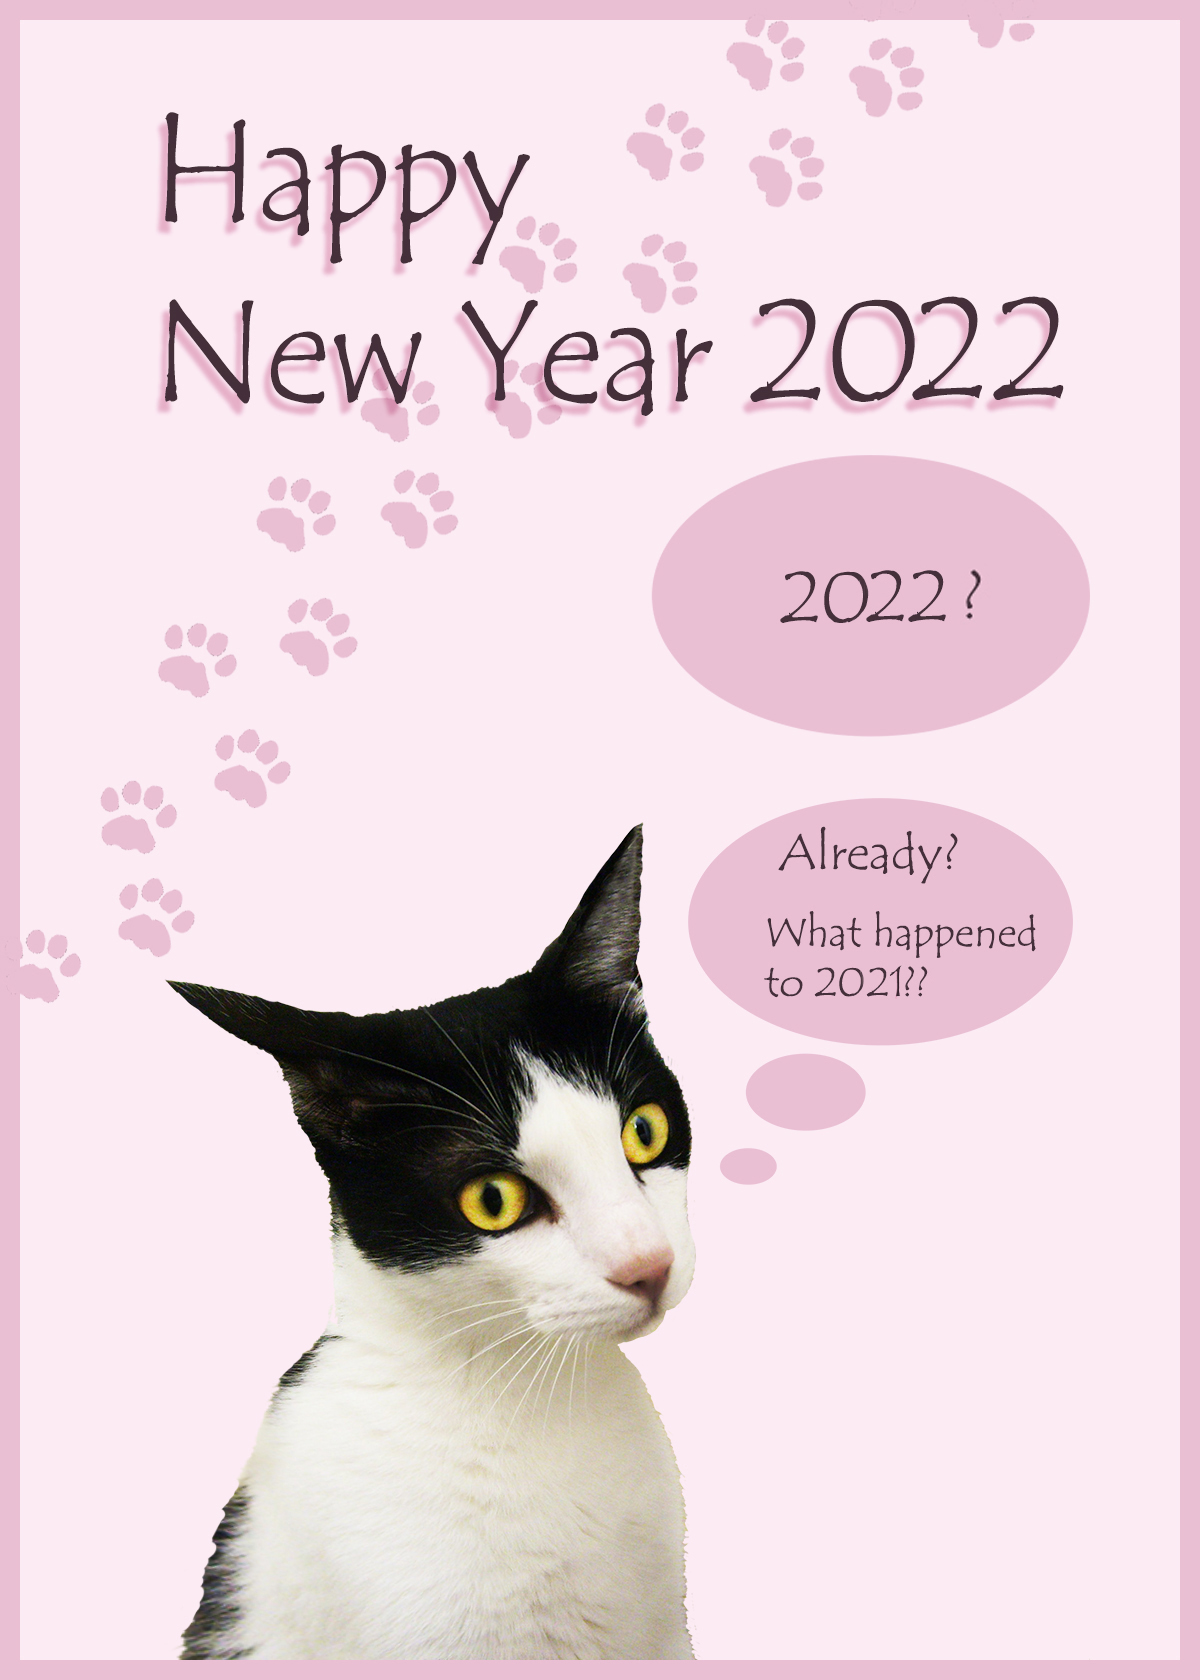 happy New Year card with funny cat